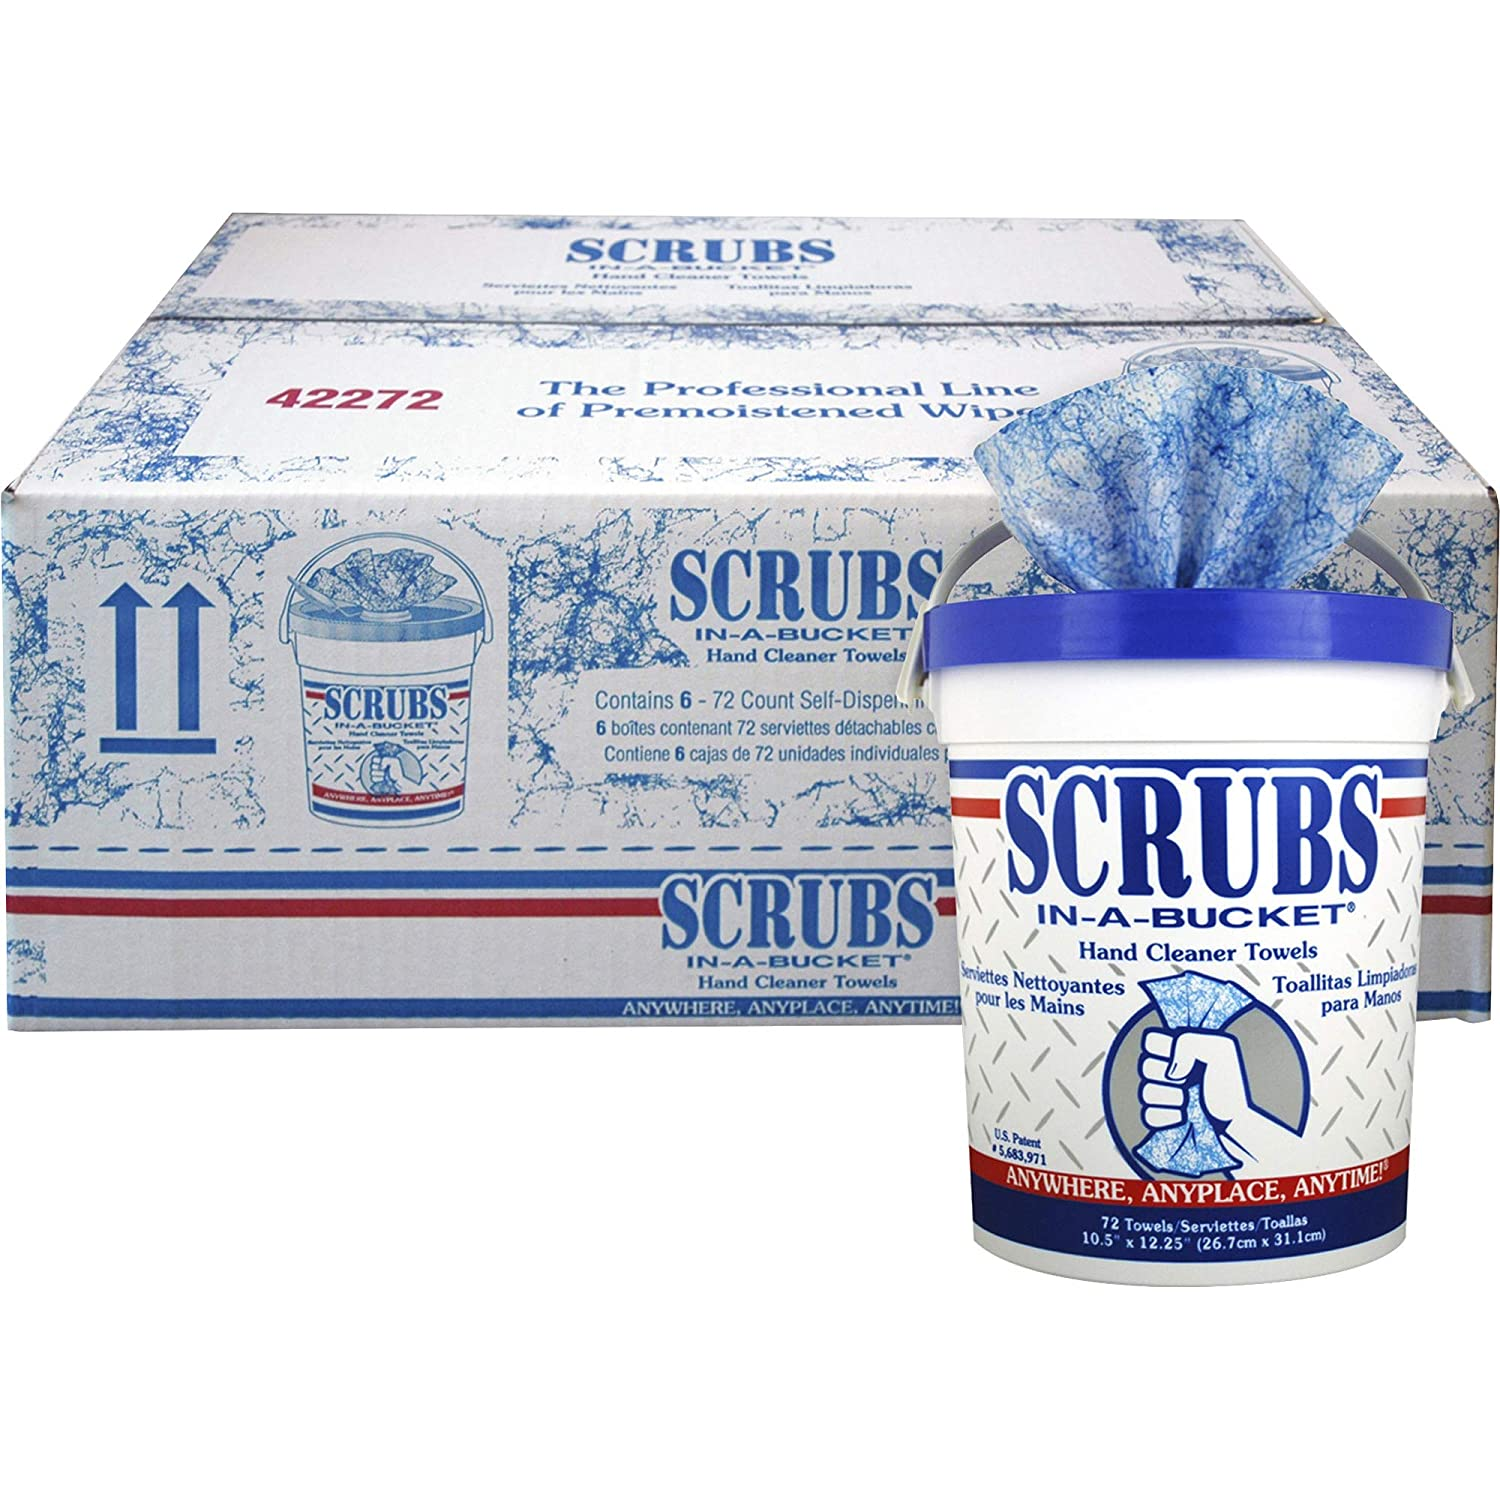 Amazon.com: Scrubs 42272CT in-A-Bucket Hand Cleaner Towels, 6 EA: Industrial & Scientific